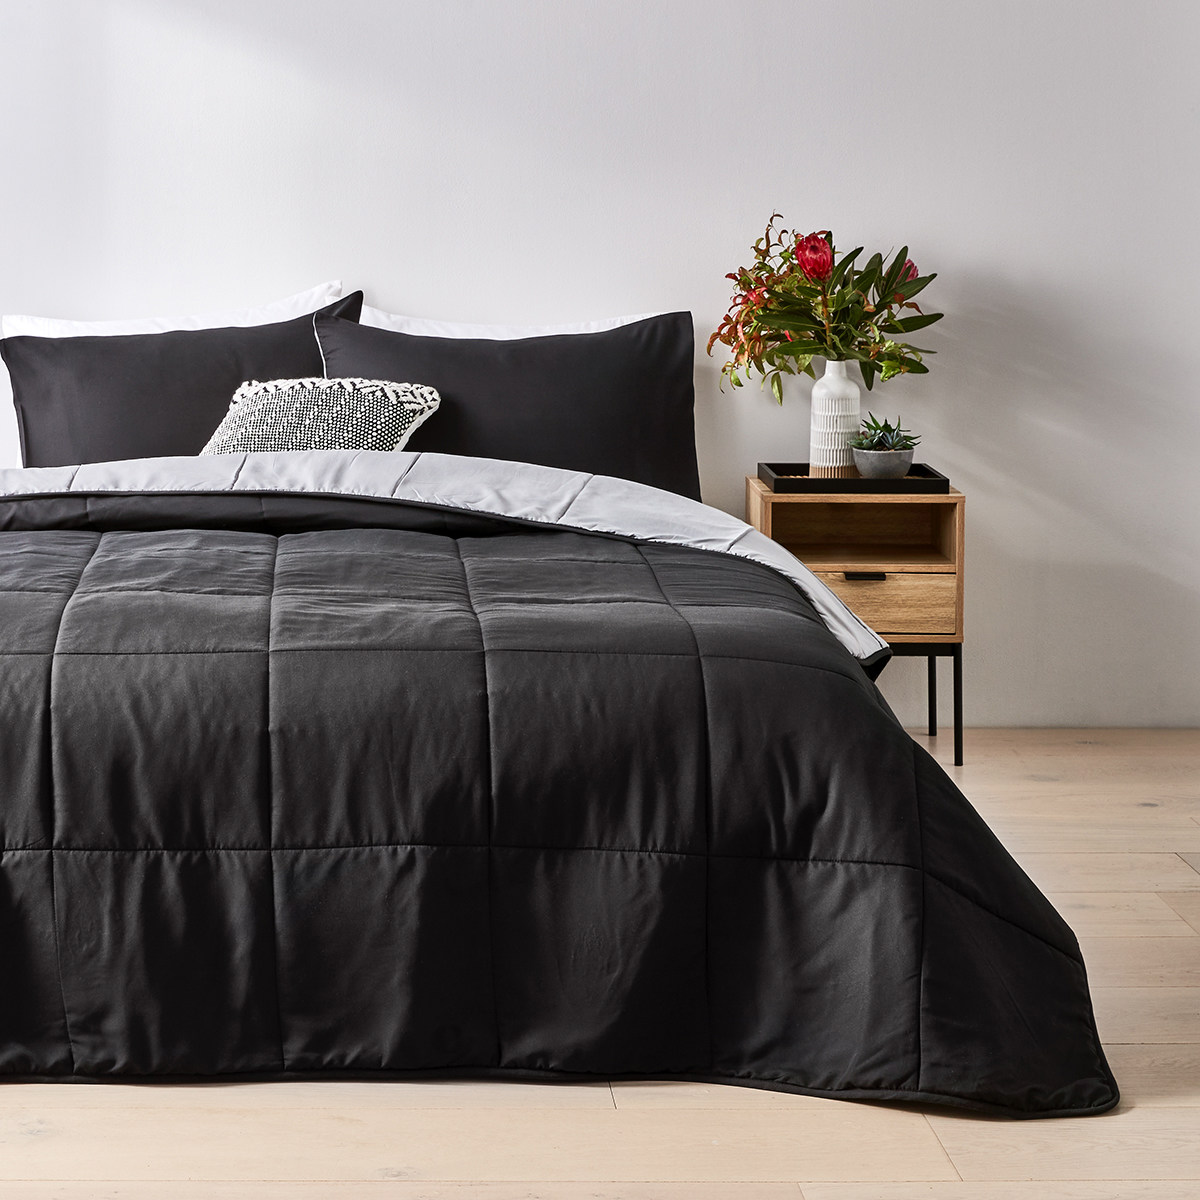 Quilt Cover Sets & Bedding Sets | Kmart : kmart quilts - Adamdwight.com